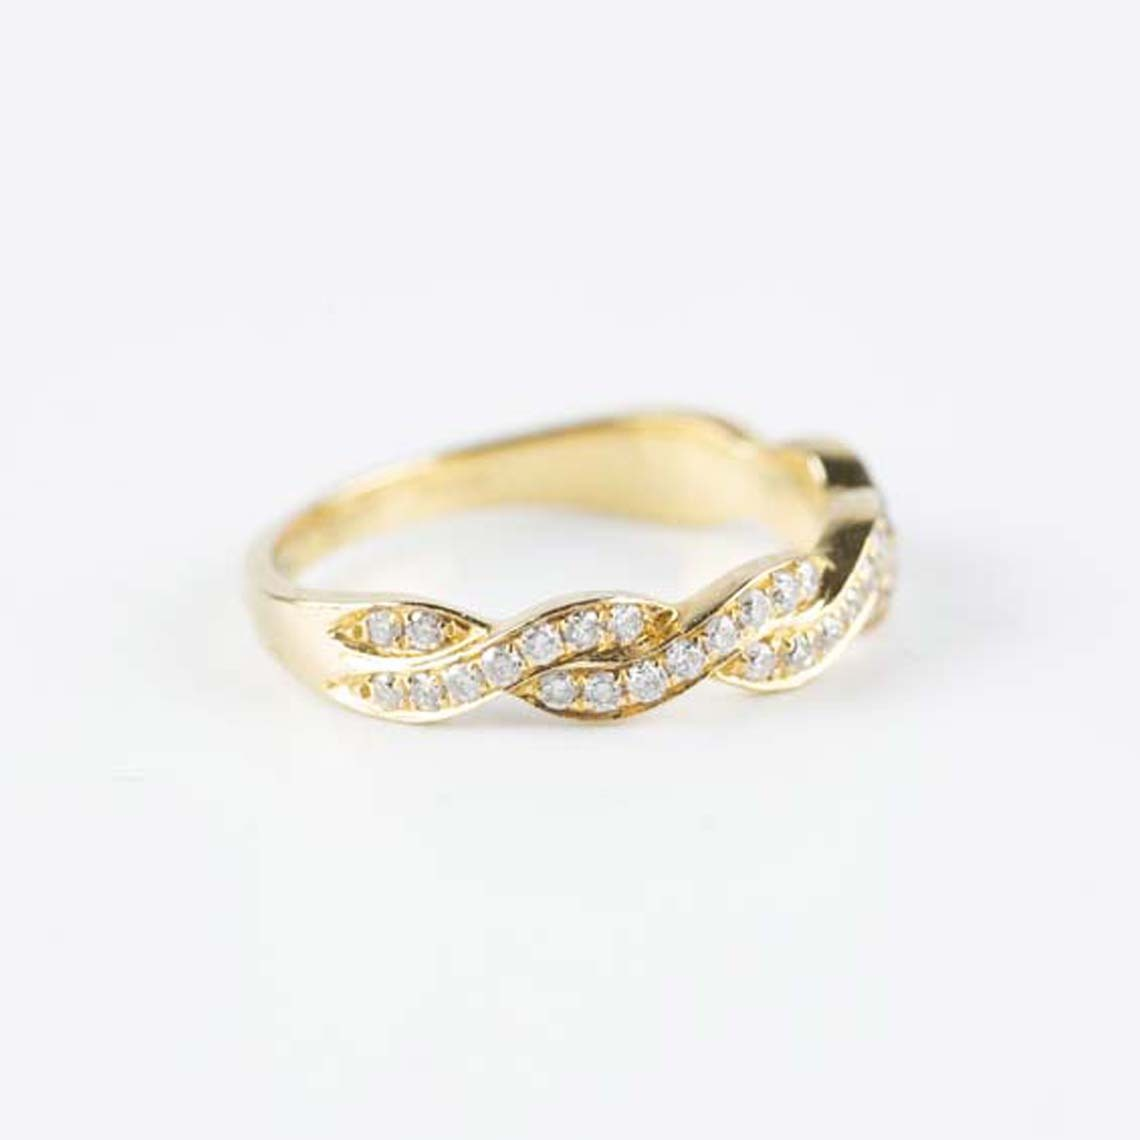 Eternity rdiamond ring